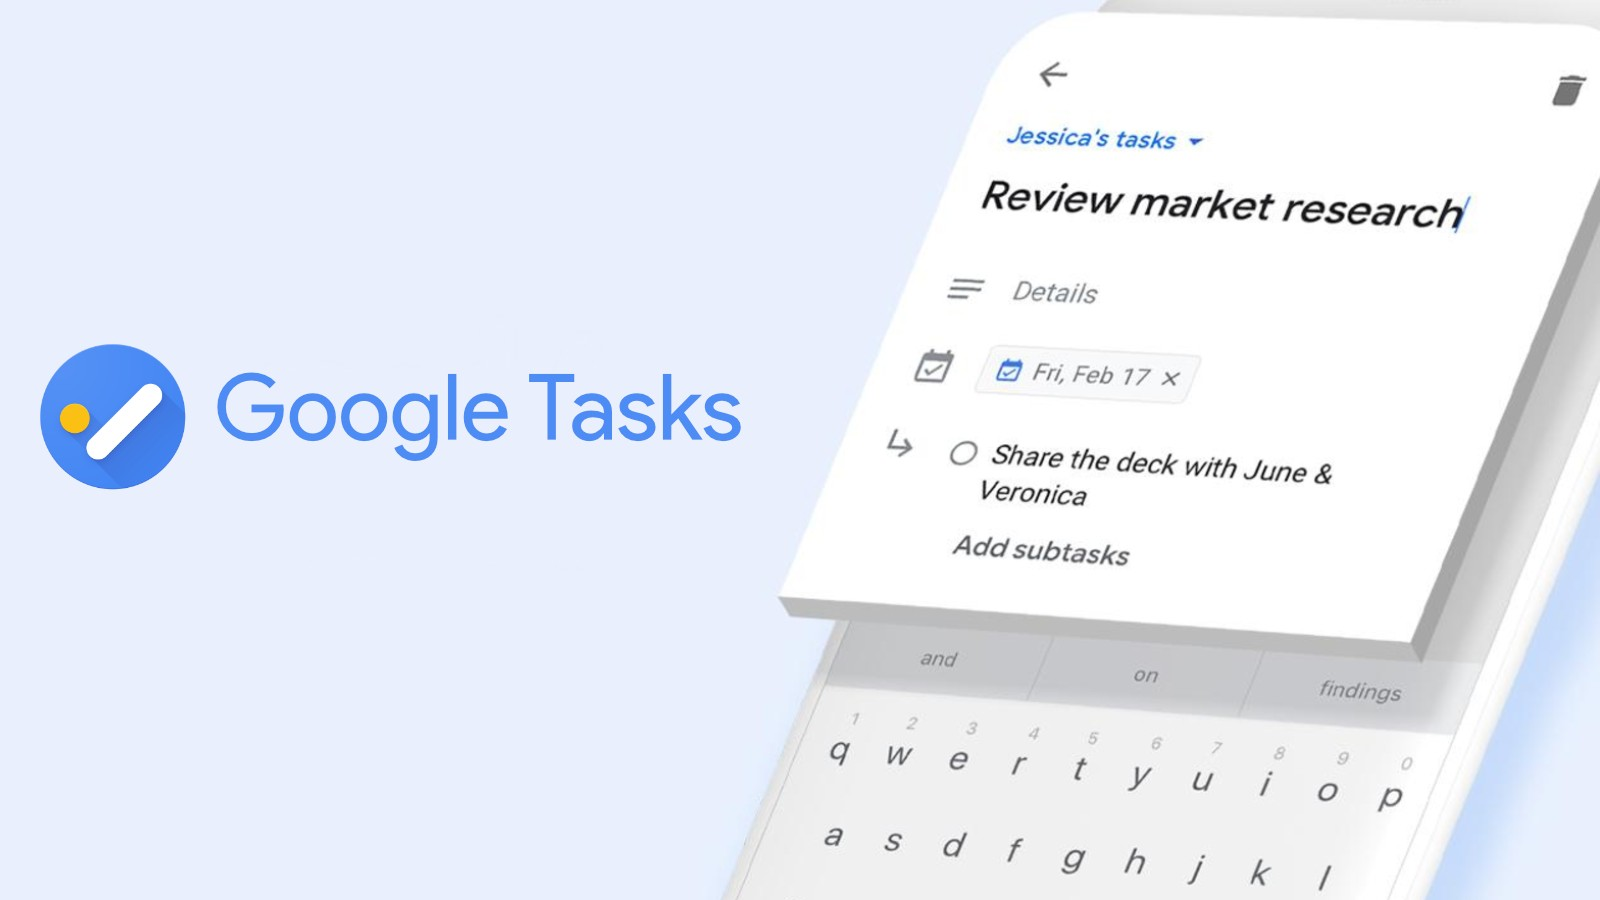 Moving Tasks to Google Chat has its benefits, but also destroys what makes them most useful